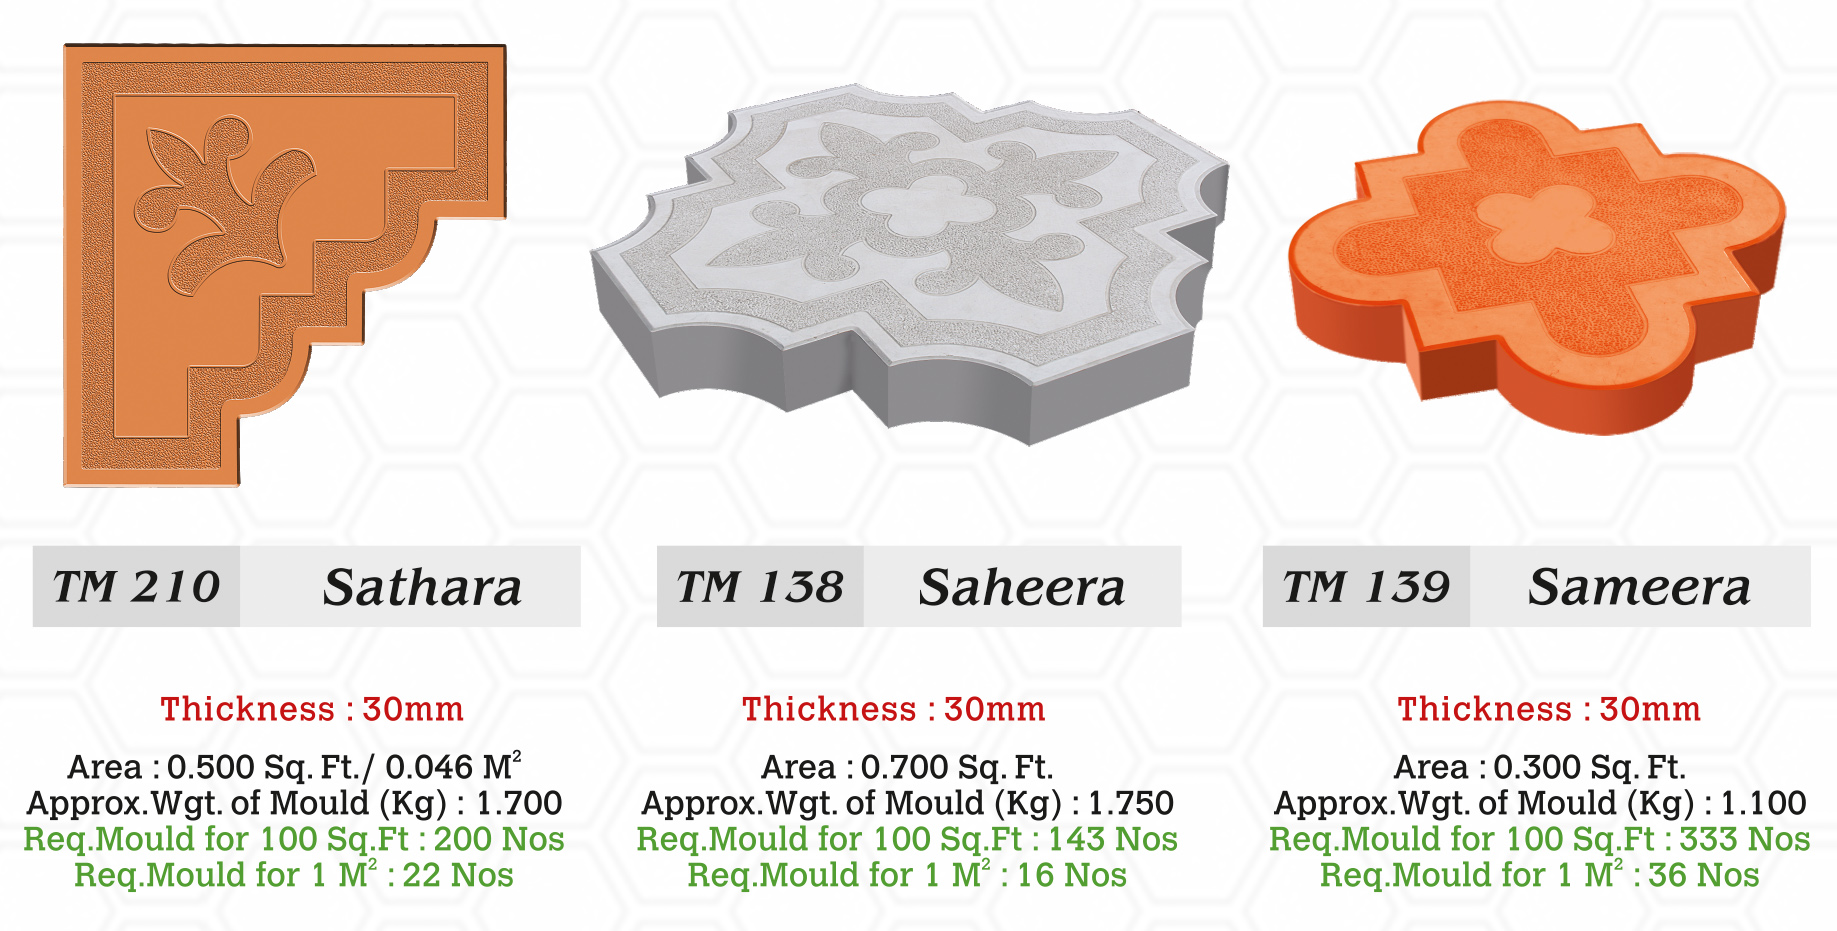 3 SPECIFIC REASONS TO CHOOSE PVC FLOOR TILES